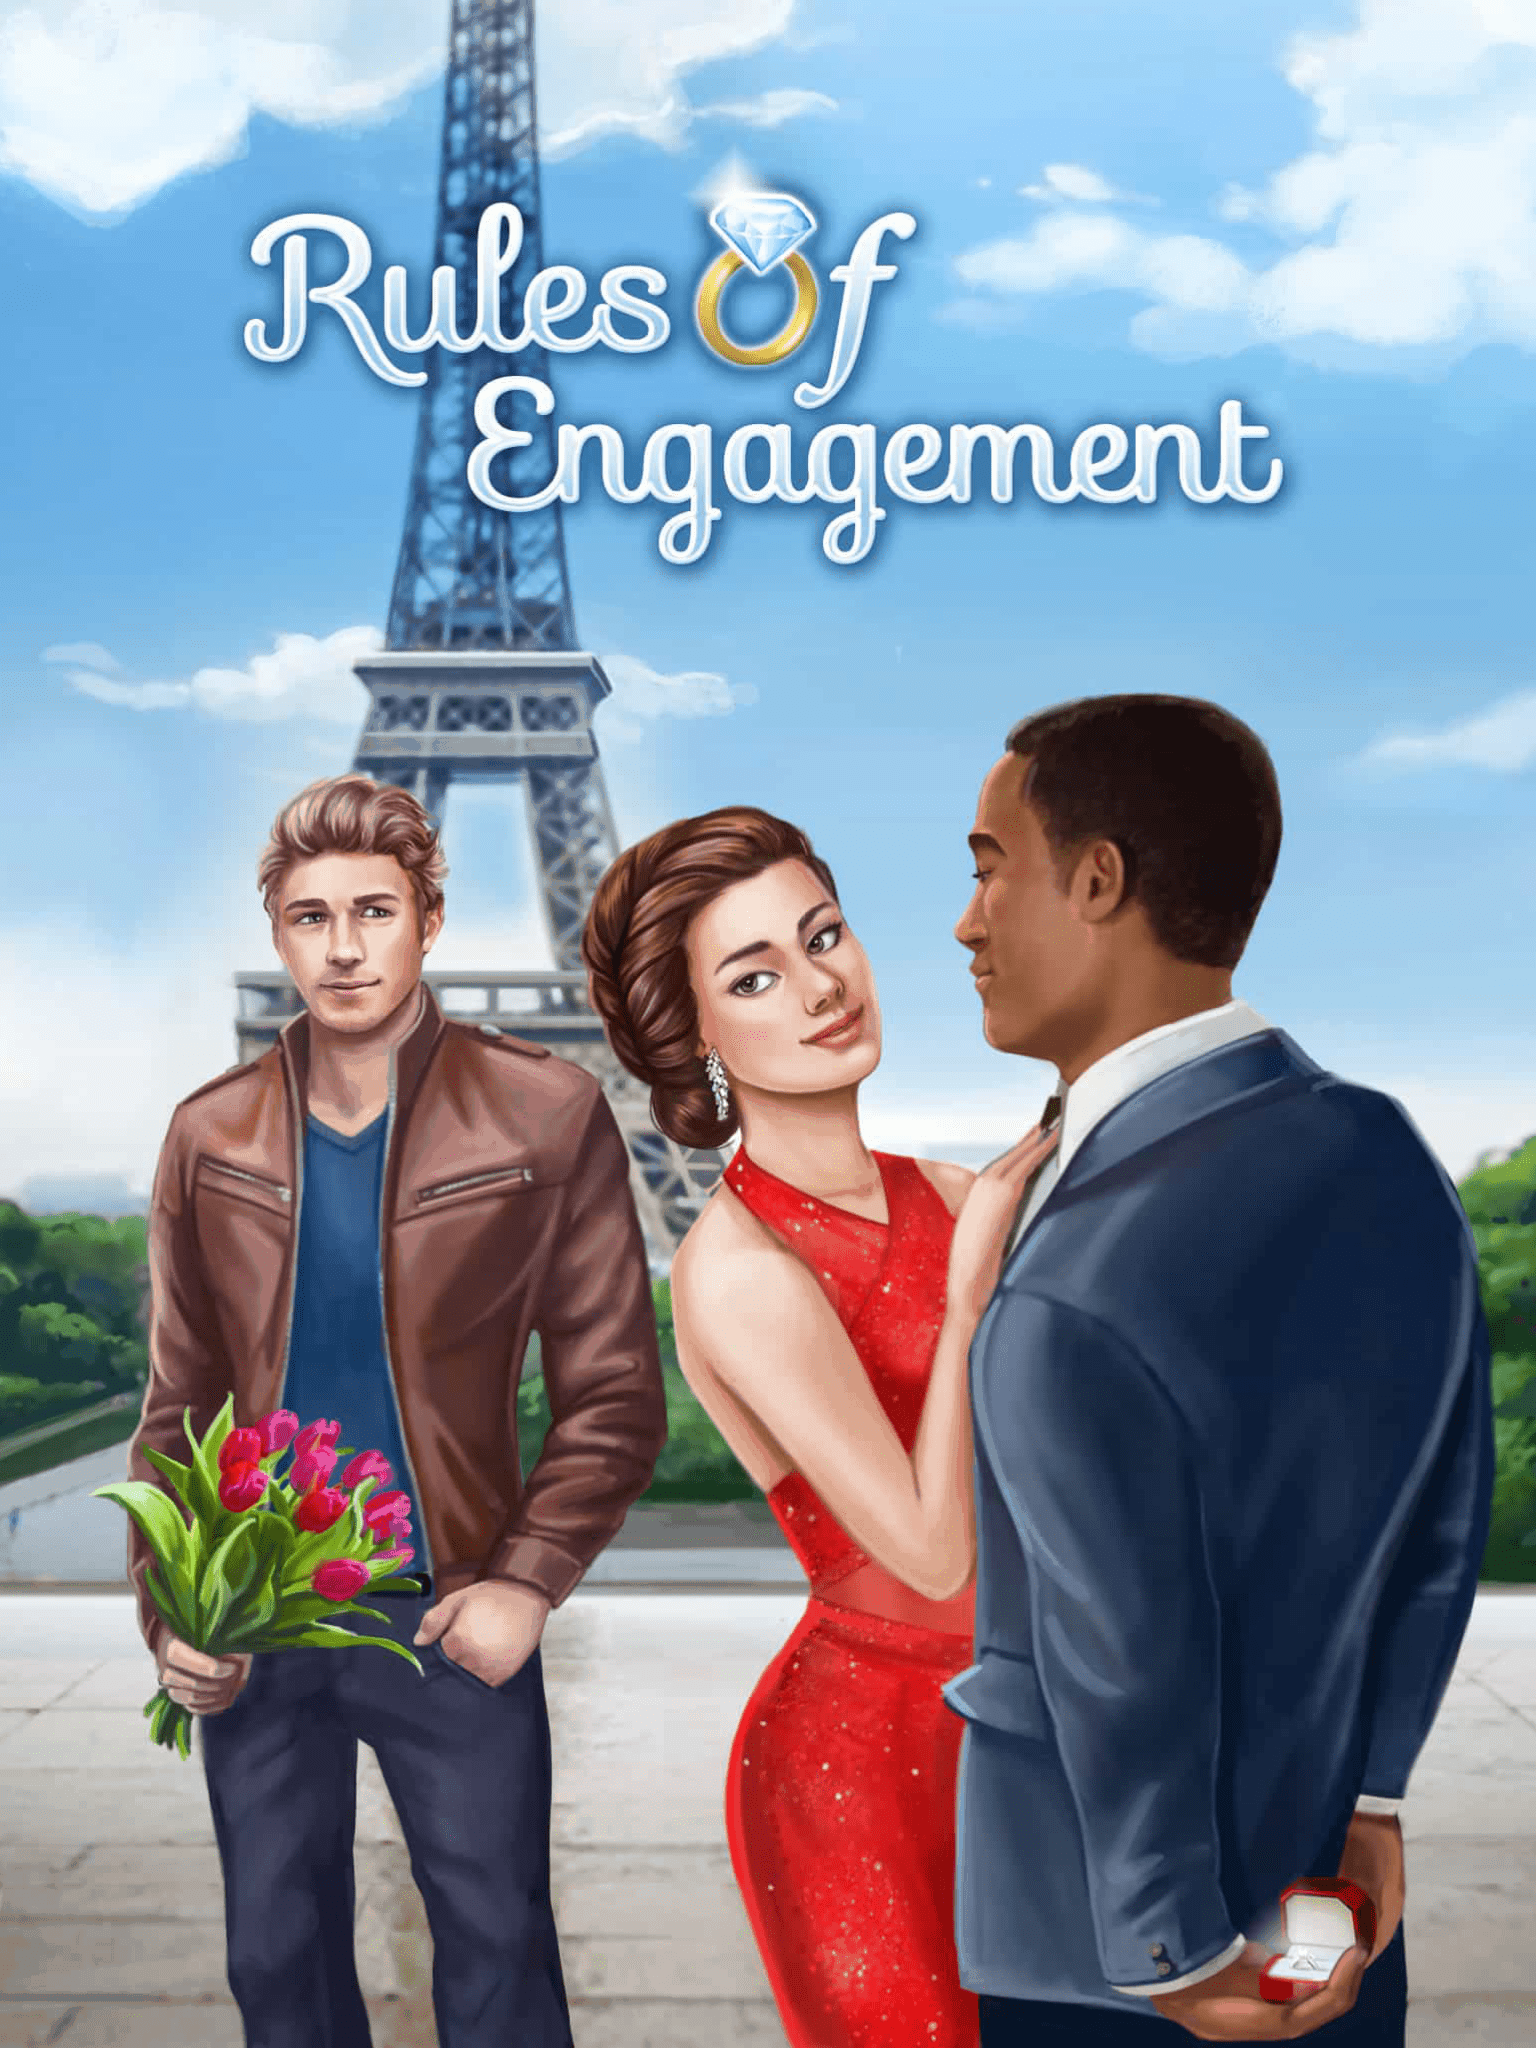 Rules of Engagement, Book 1 Choices   Choices: Stories You